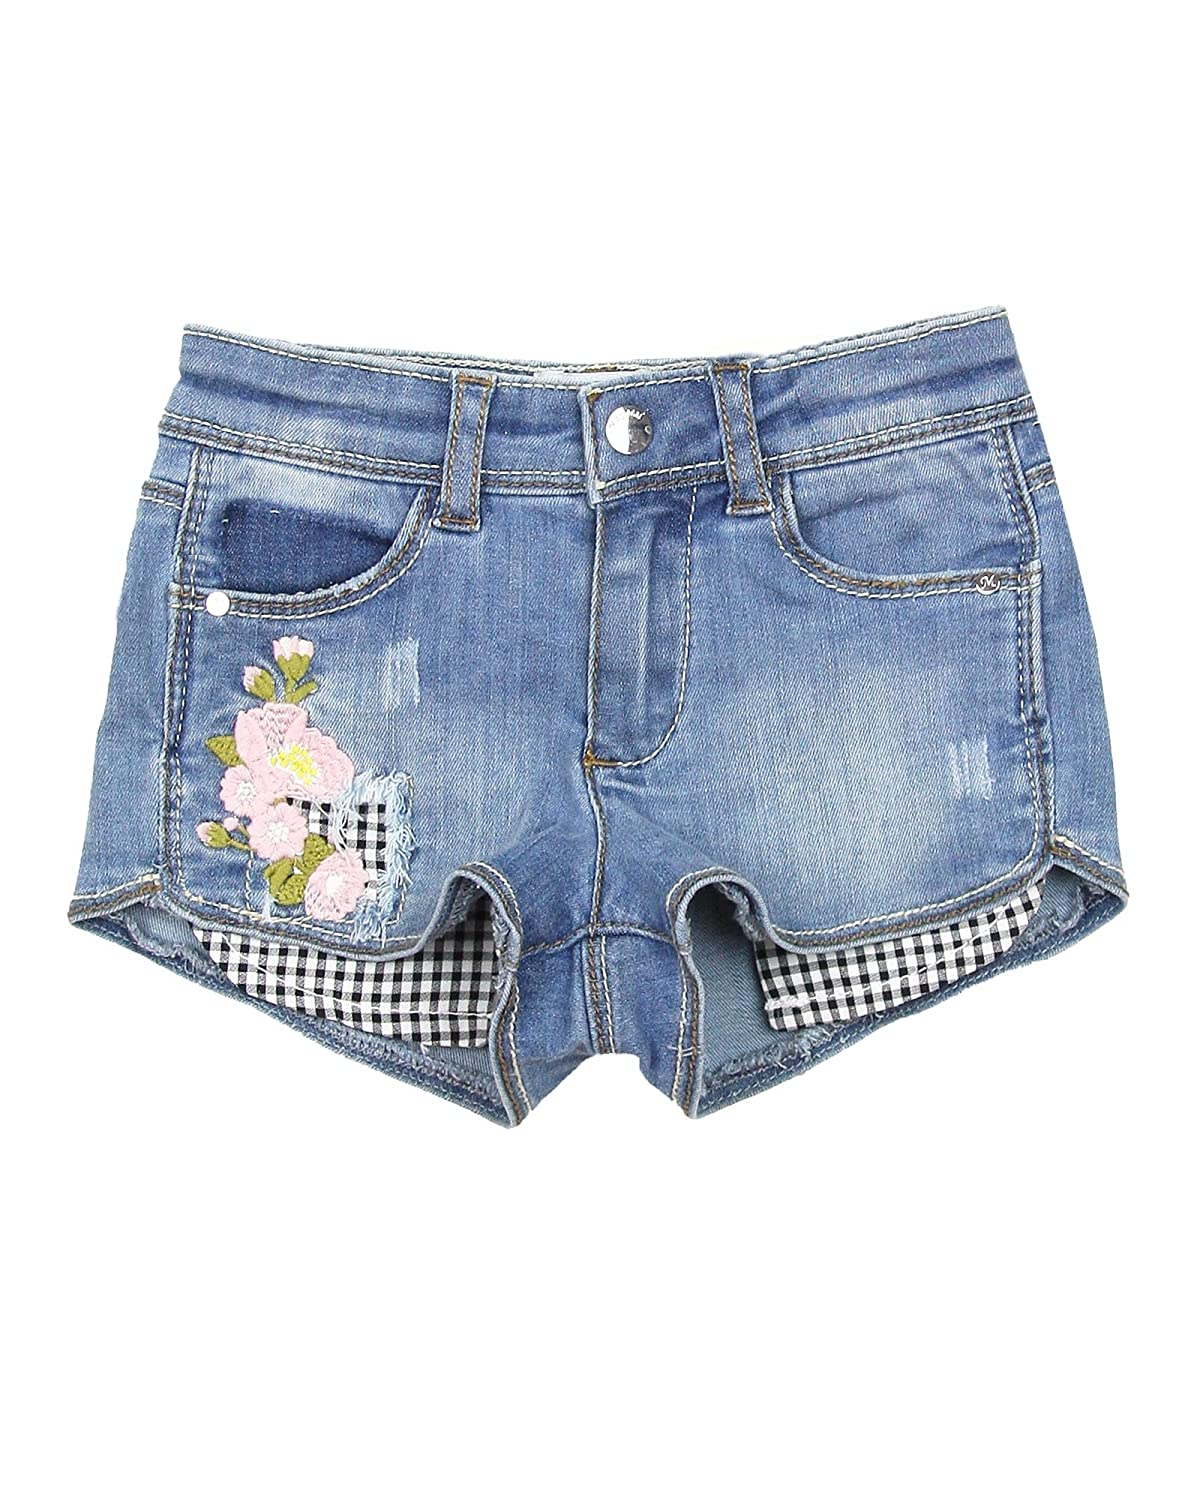 Mayoral Girls Denim Shorts with Florals Sizes 2-9